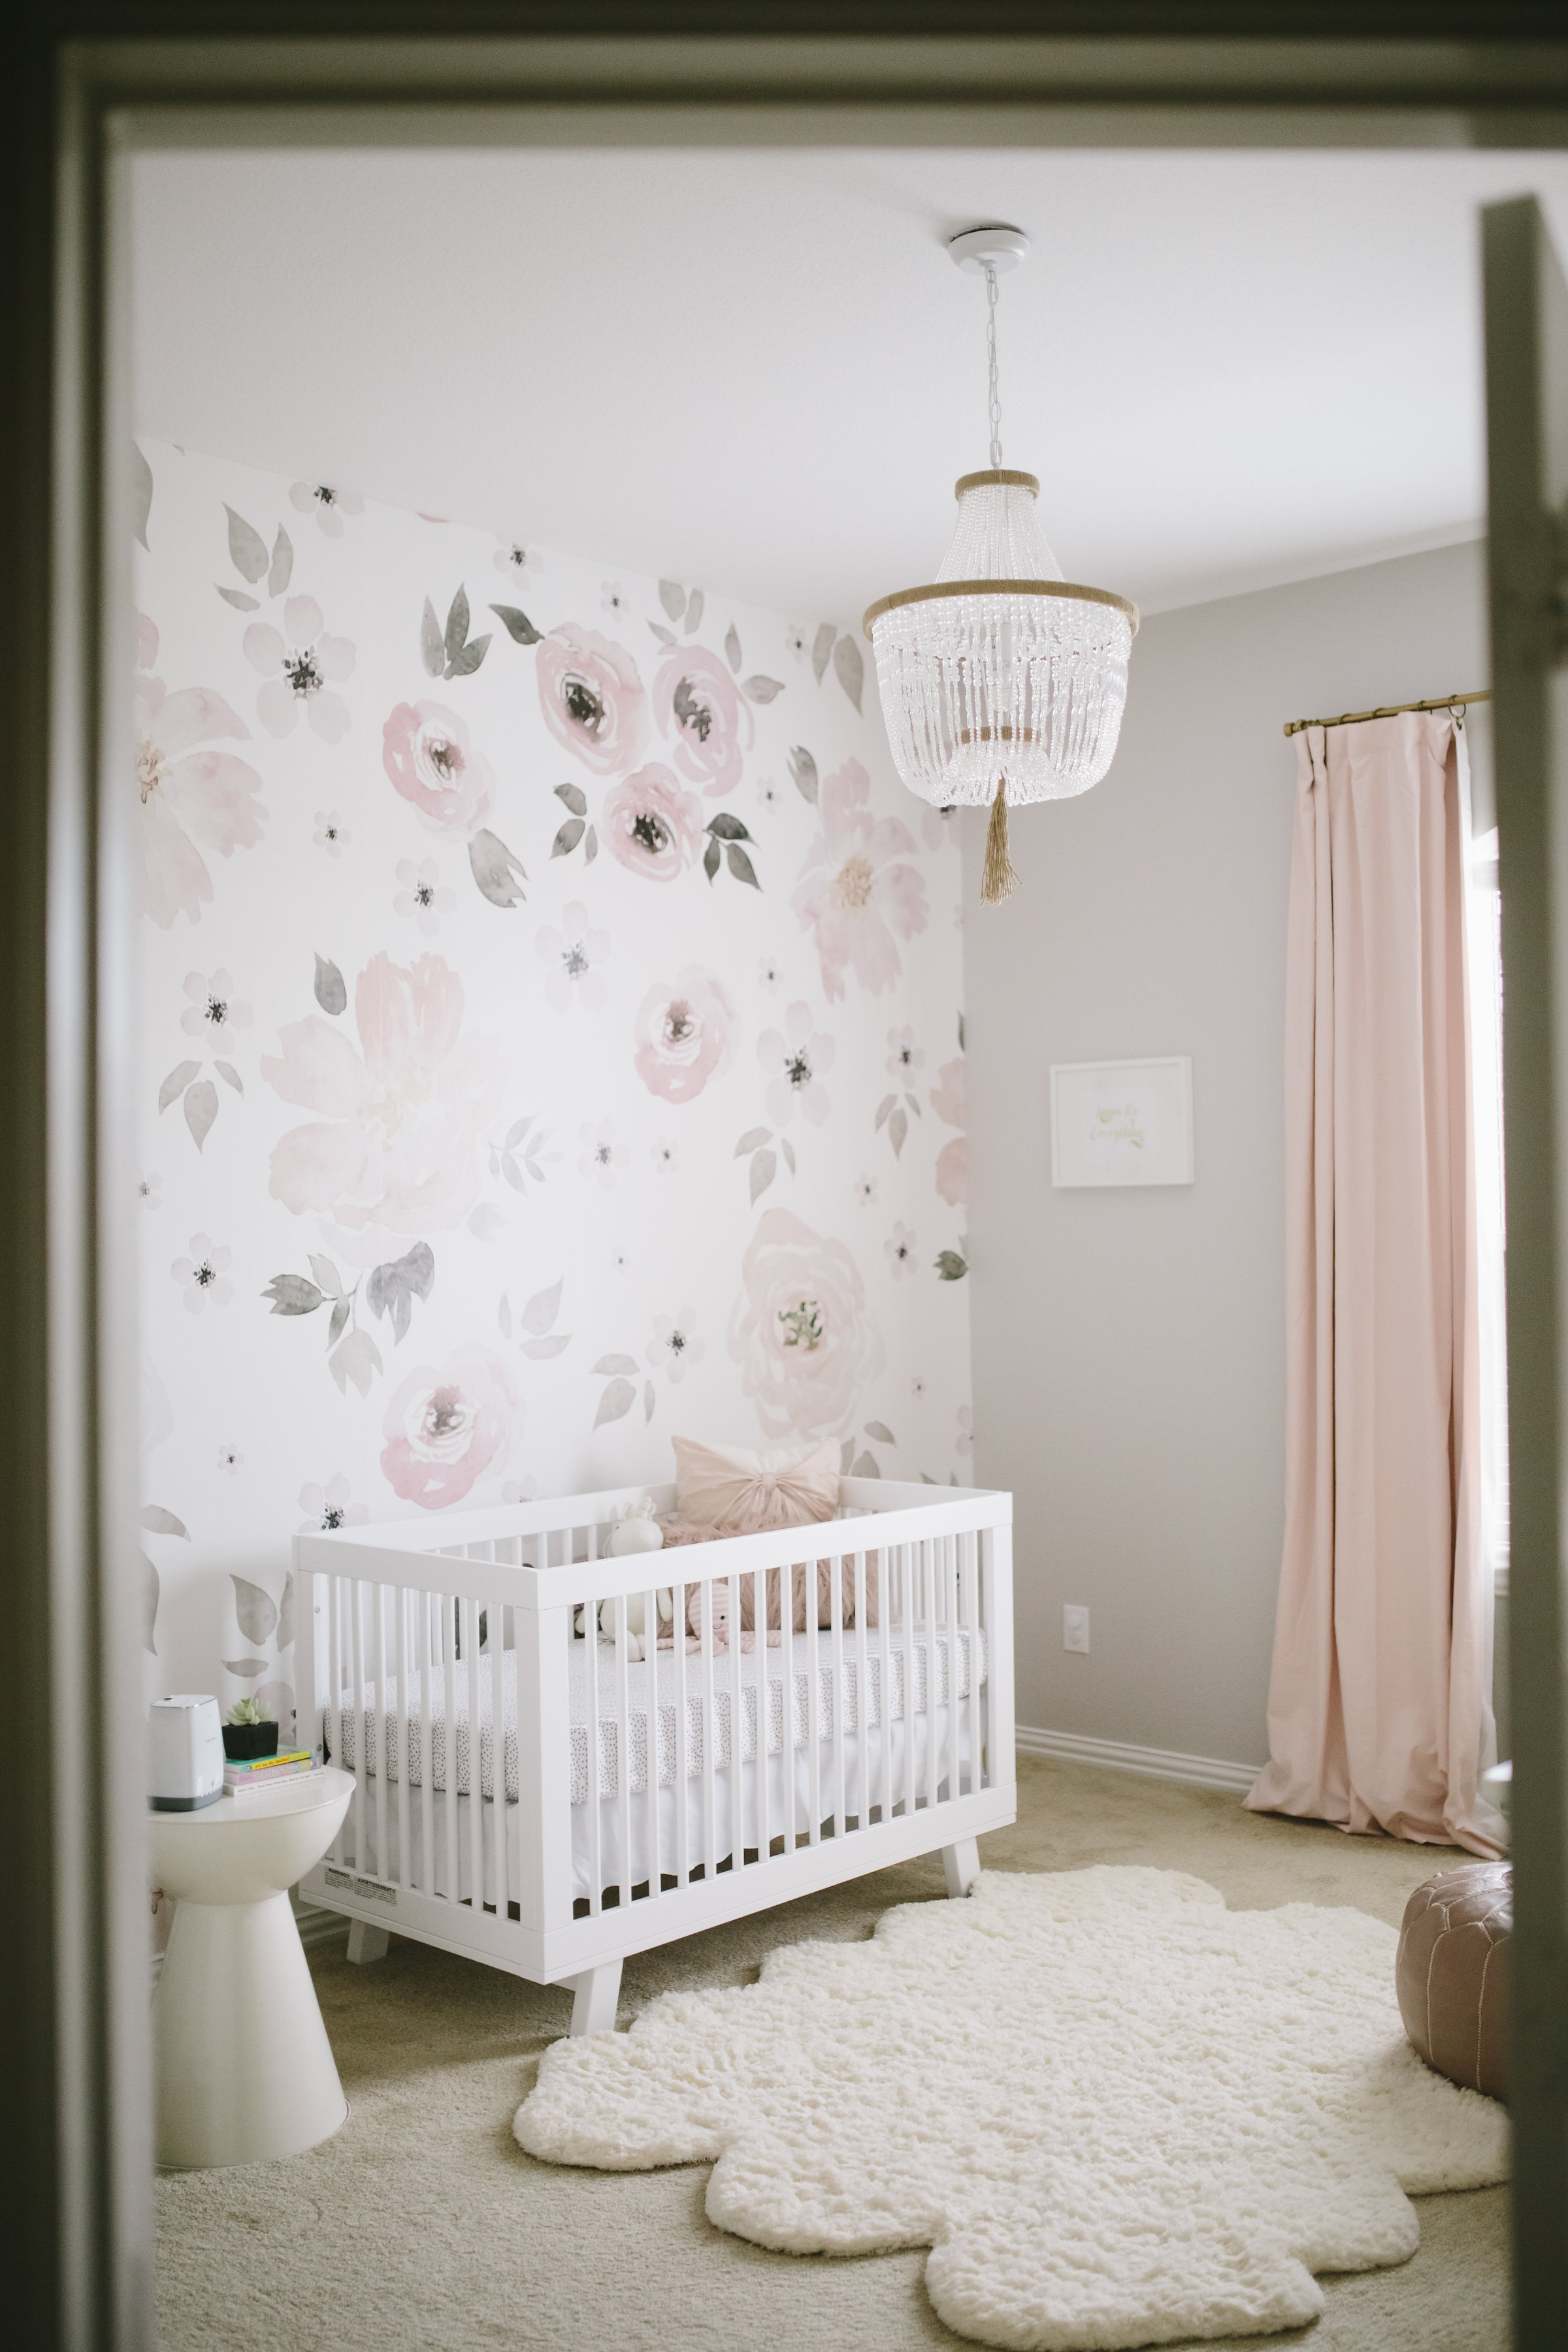 Harper's Floral Whimsy Nursery - Project Nursery